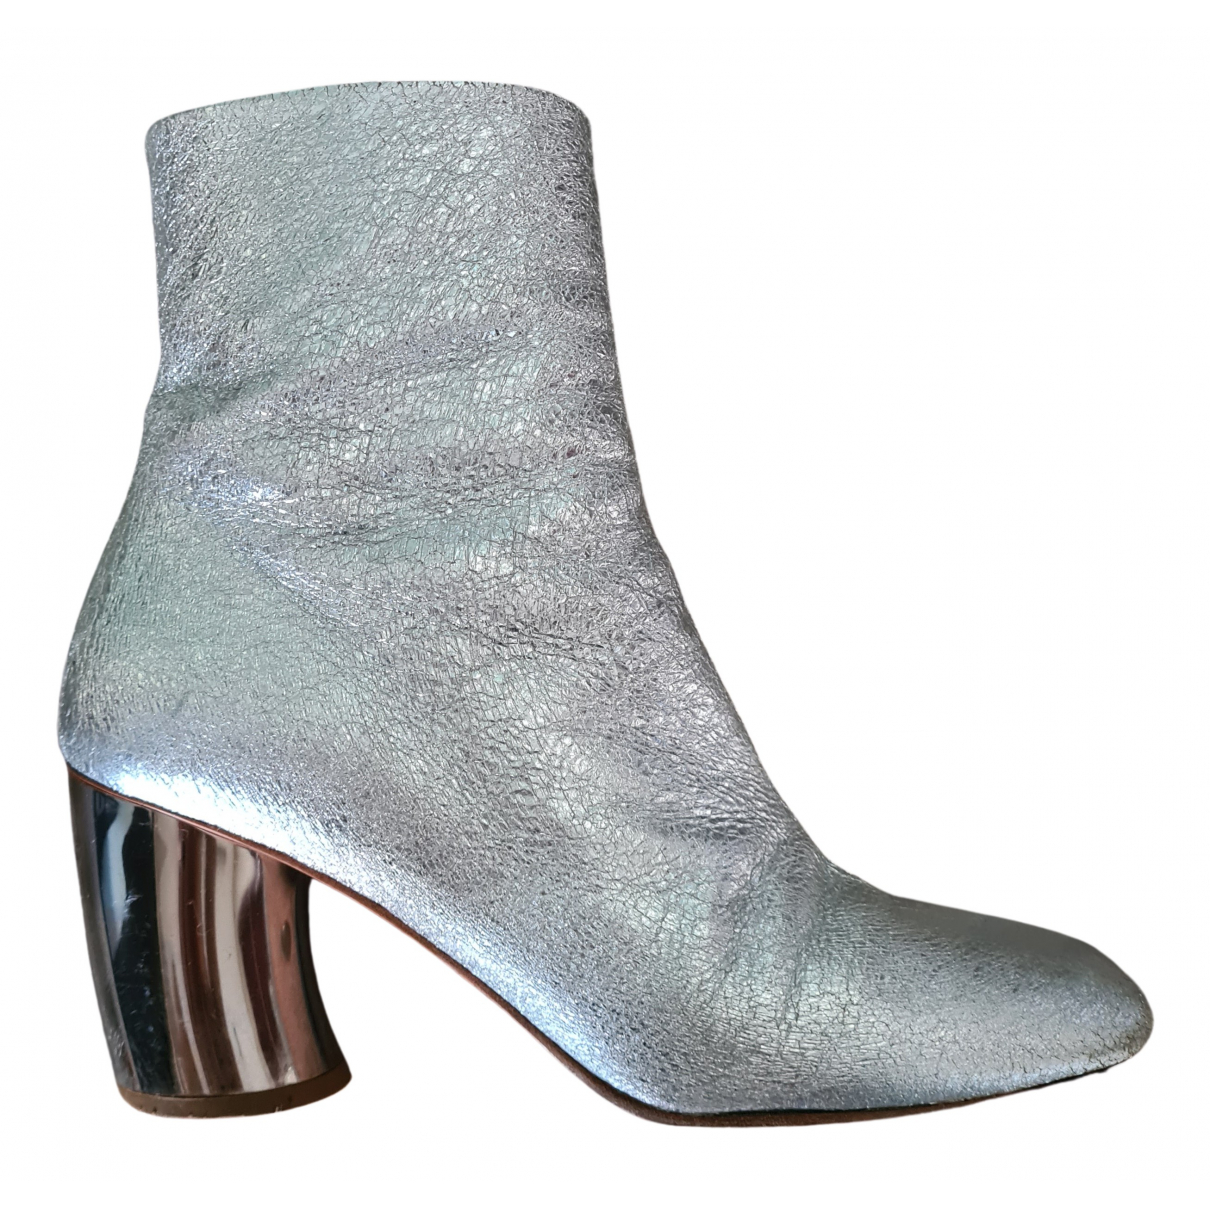 Proenza Schouler N Silver Leather Ankle boots for Women 40 EU